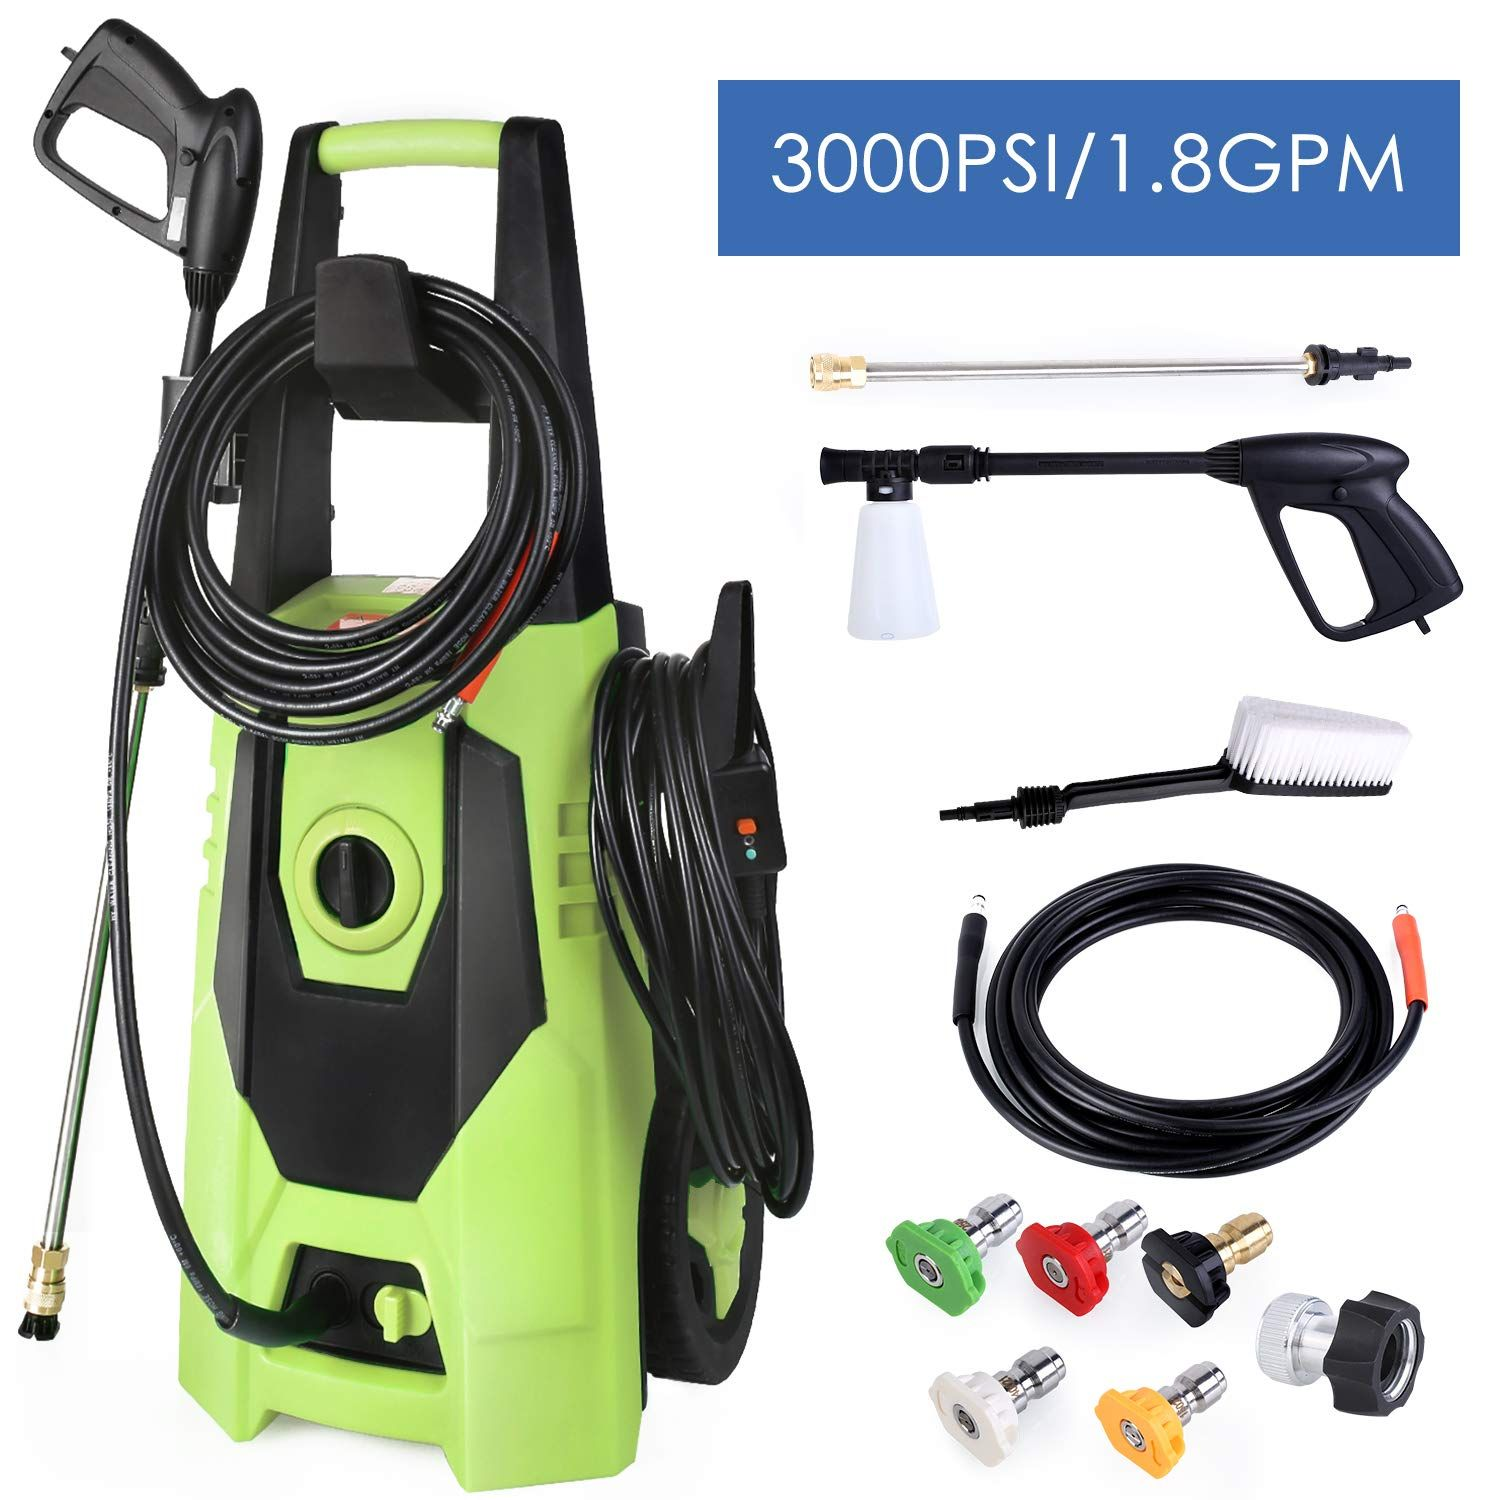 Washer Car Cleaning Water Gun Tool Pressure Power Motorcycle Washing 3000 PSI